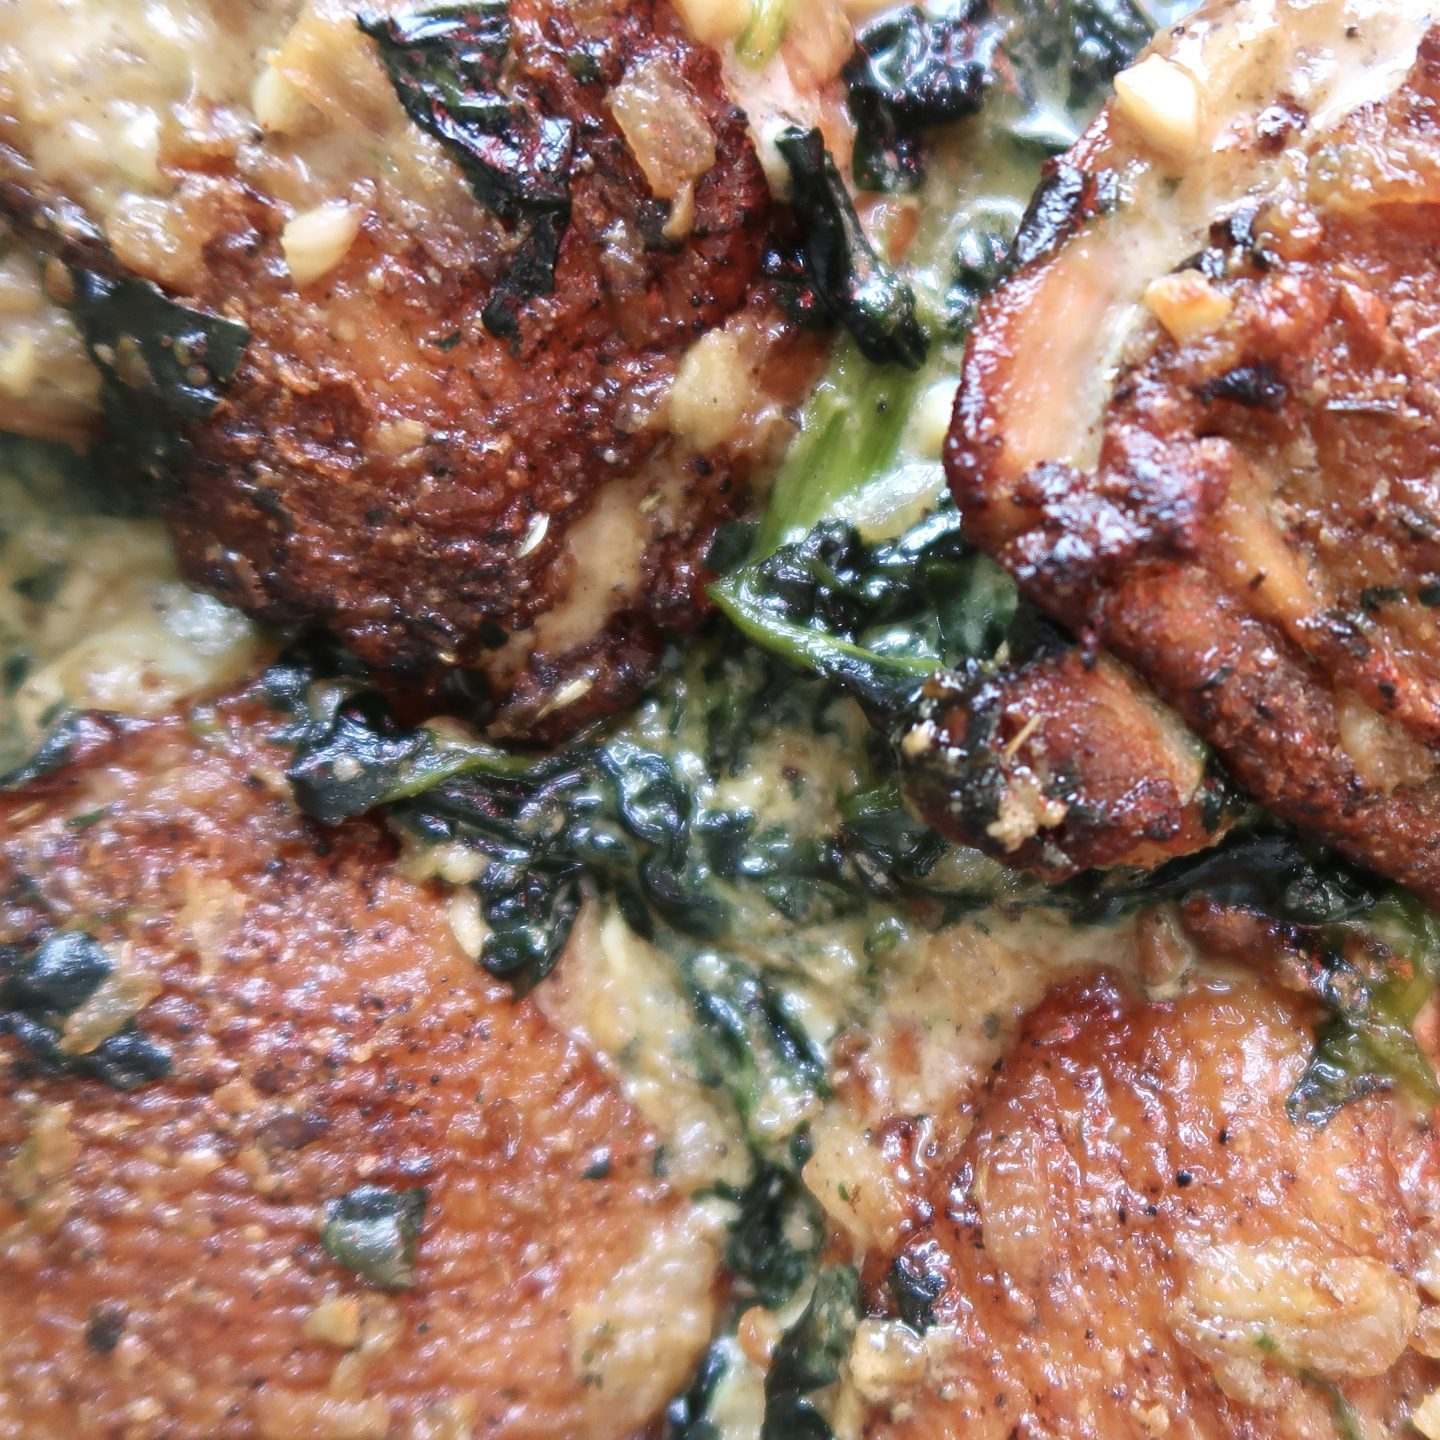 Oven-roasted chicken thighs in a garlic, spinach cream sauce